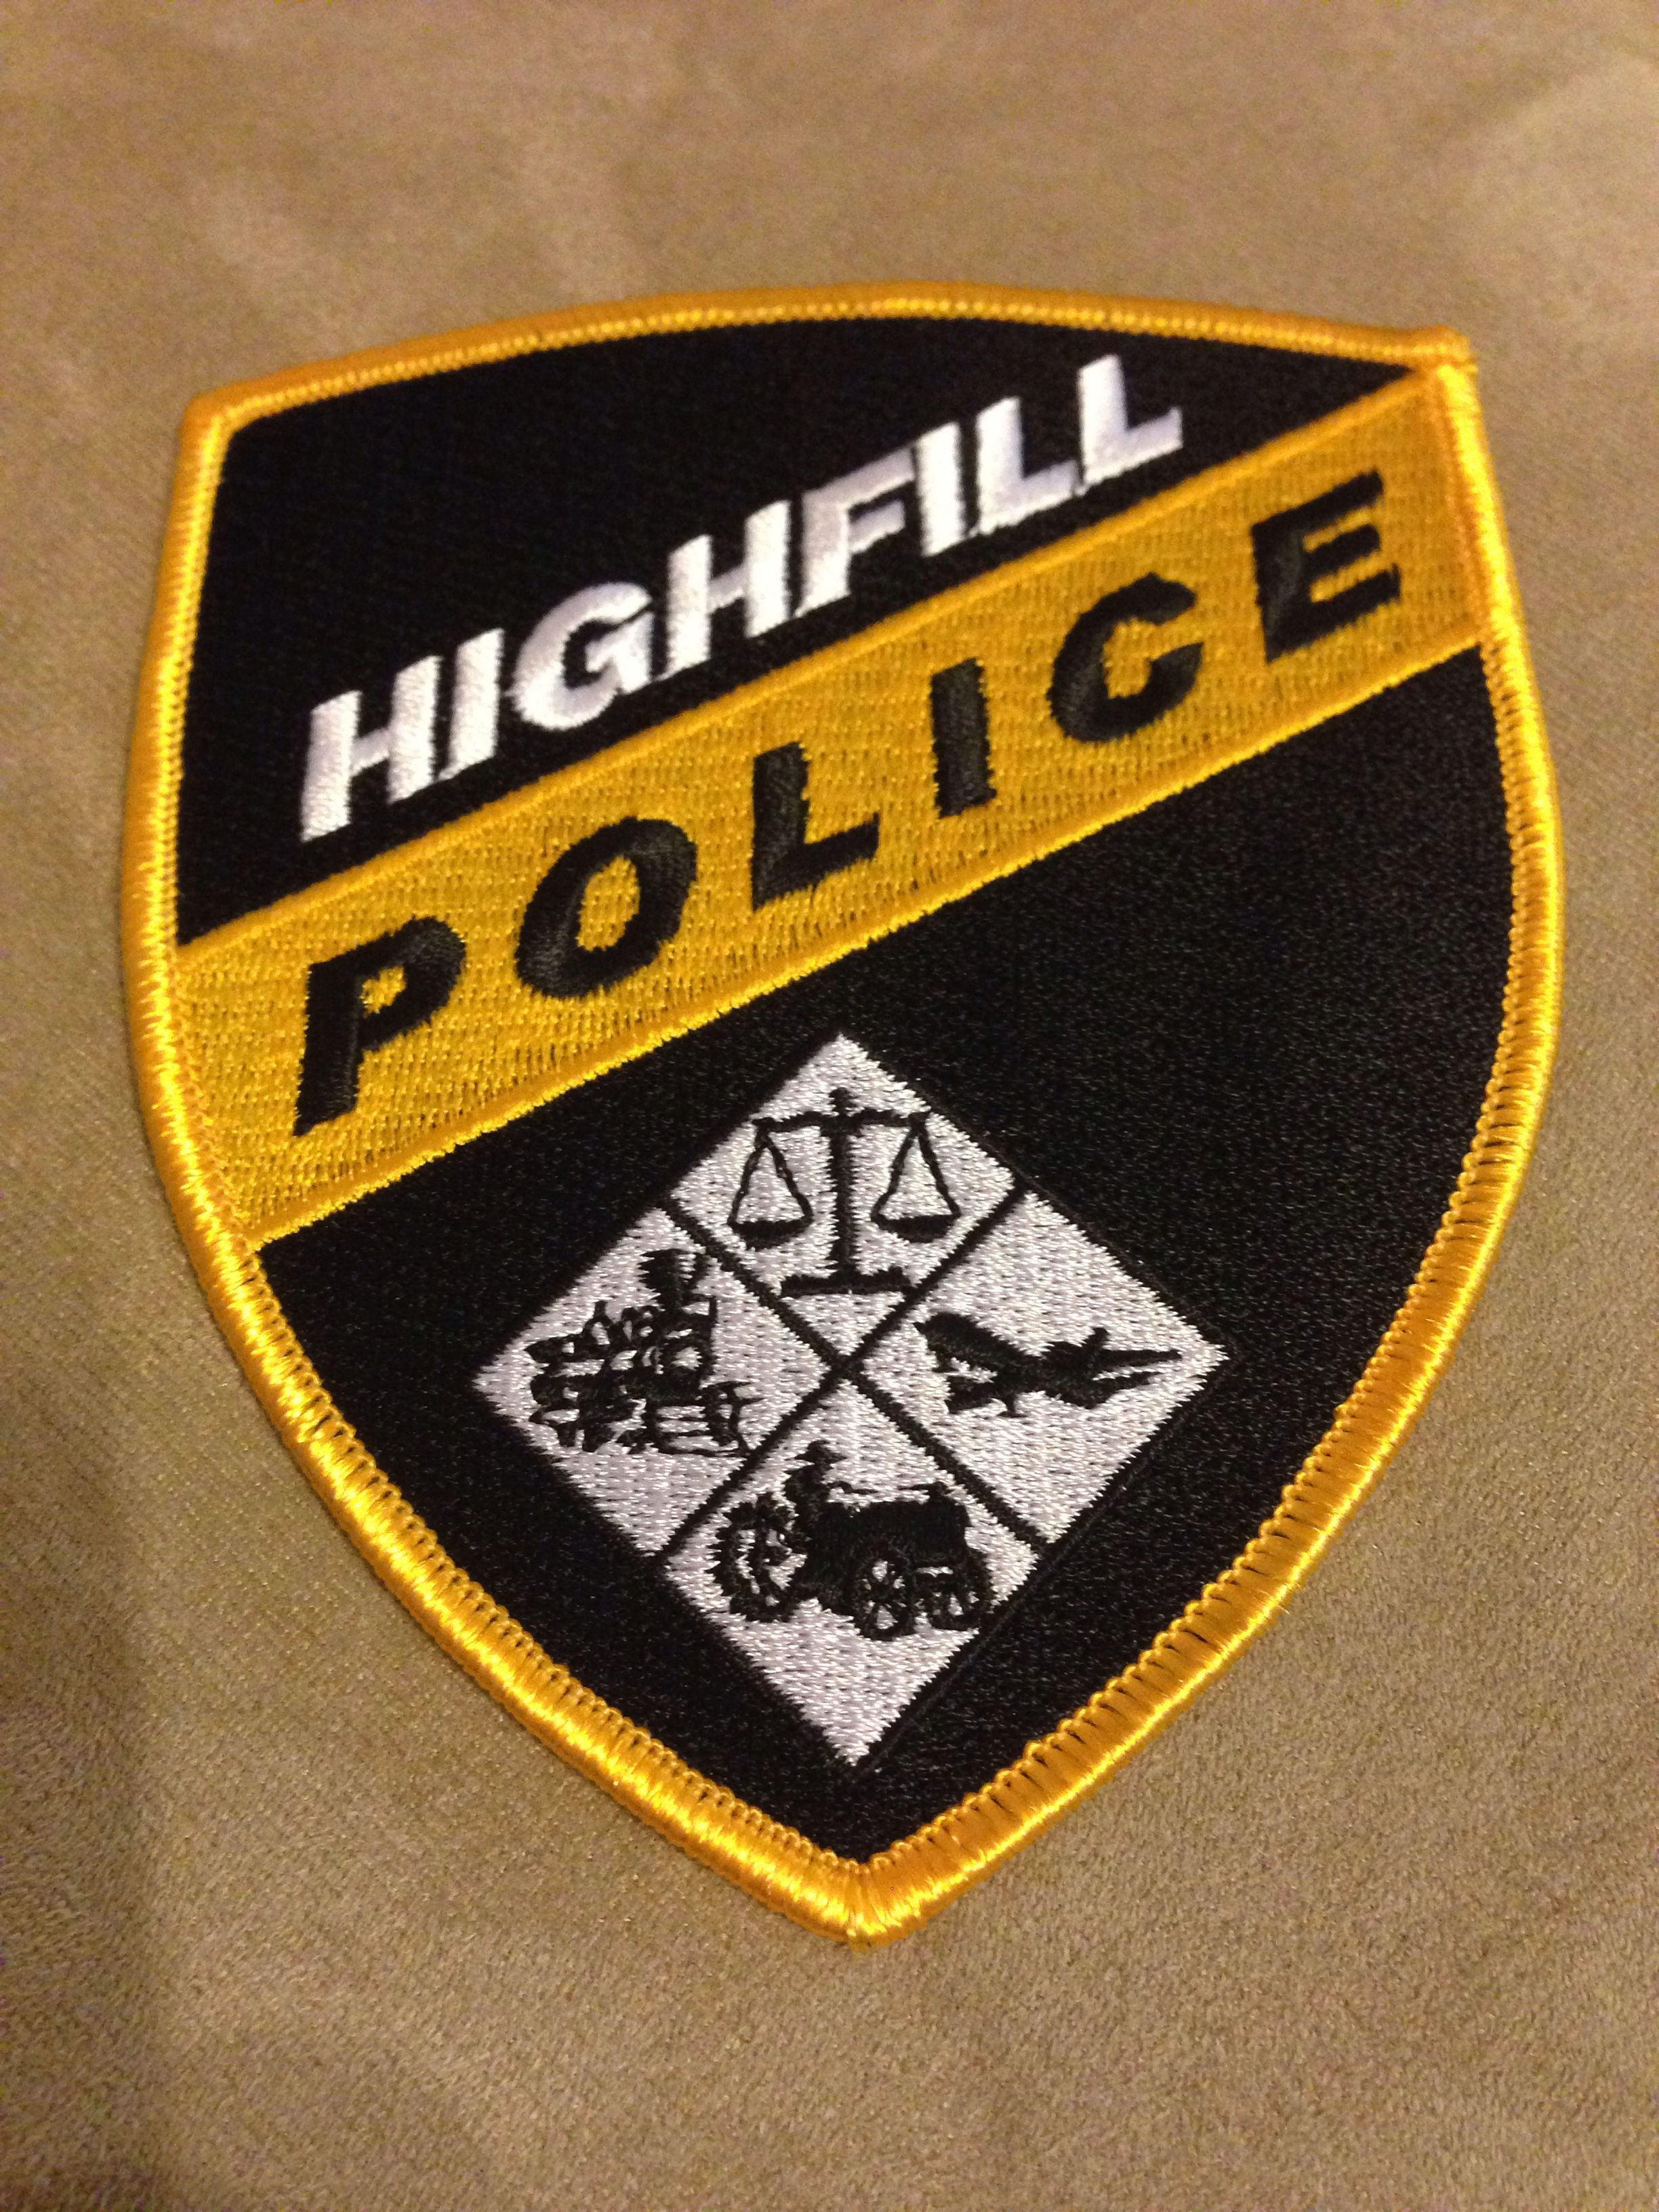 Highfill Police Department Police patches, Police